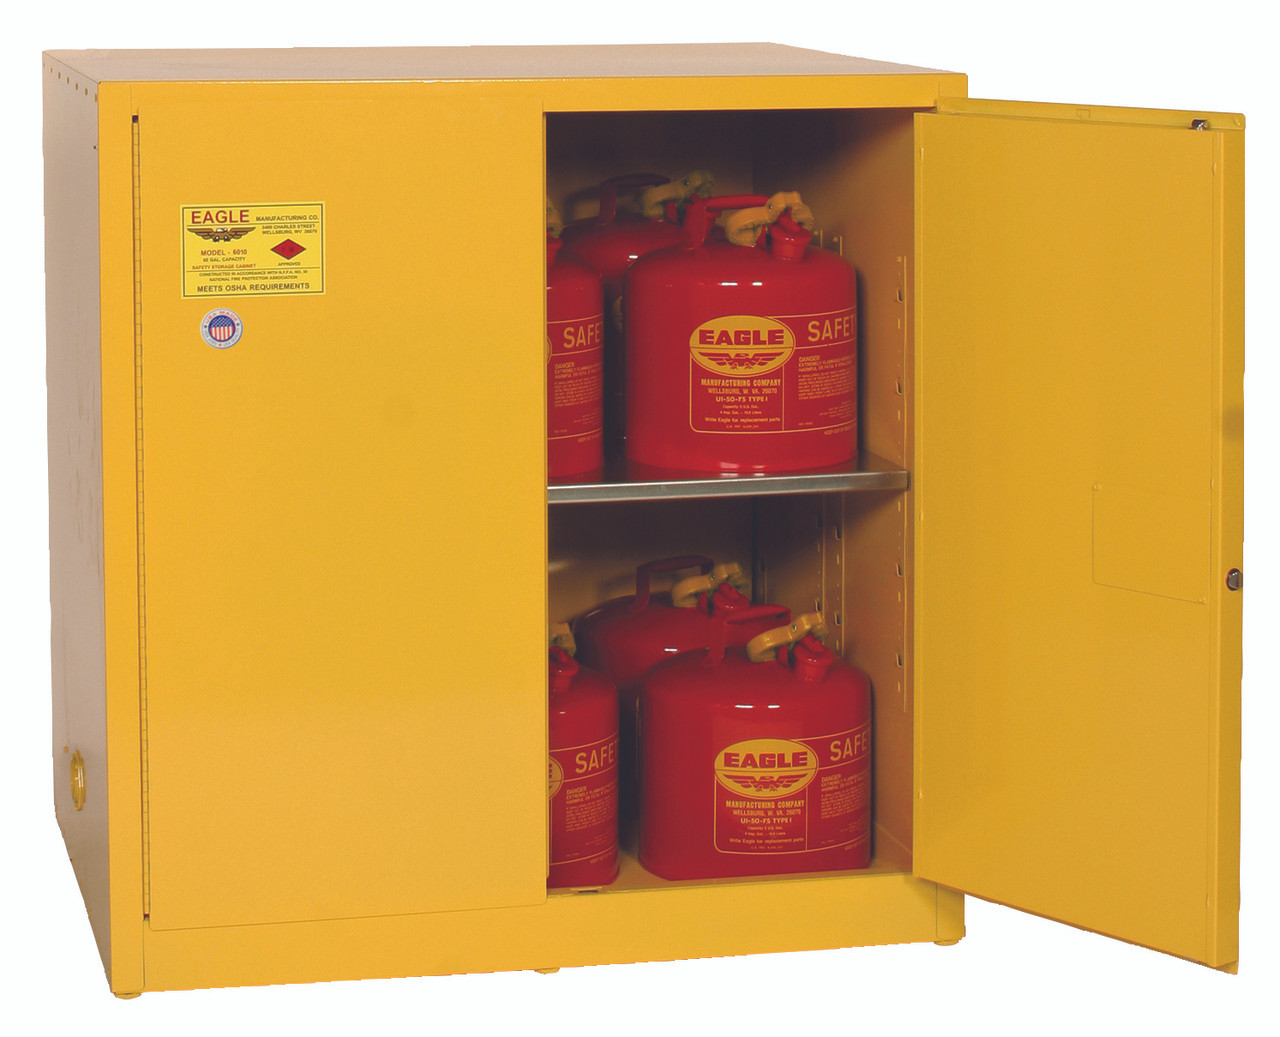 Eagle 1964x Work Bench Flammable Liquid Safety Cabinet 60 Gal 1 Shelf 2 Door Manual Close Yellow